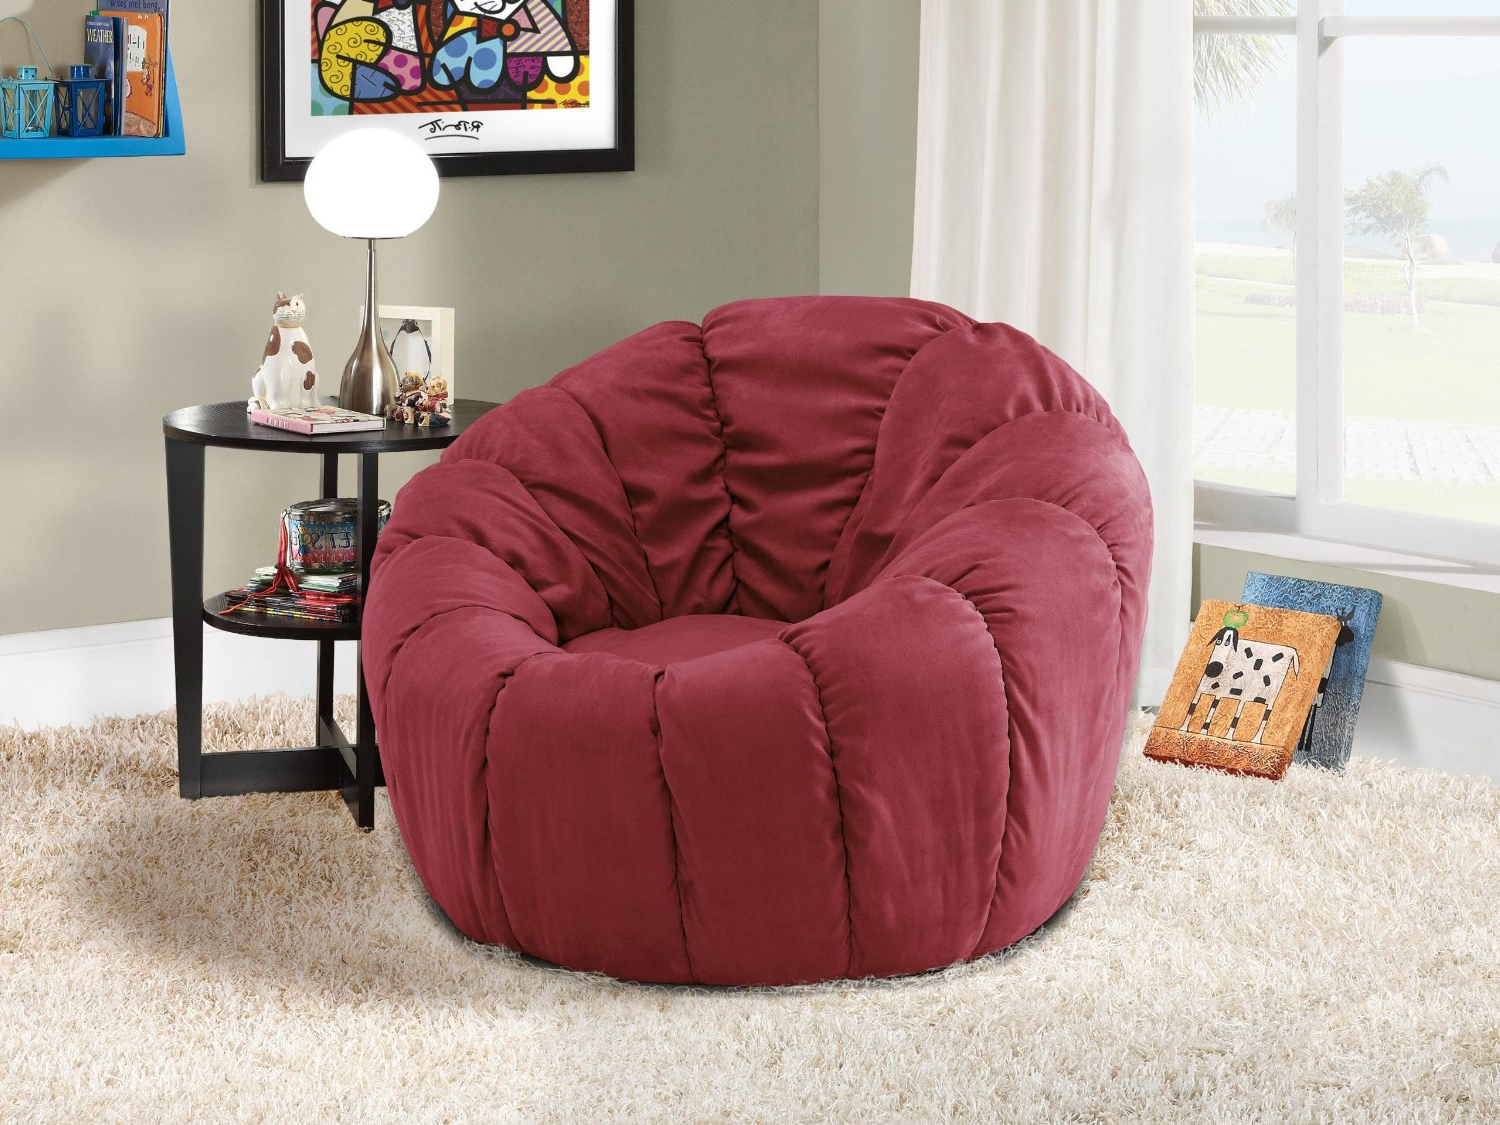 Preferred Living Room : Round Sofa Chair Sofa Round Chair Curved Sofas For Within Round Sofa Chair Living Room Furniture (Gallery 11 of 20)